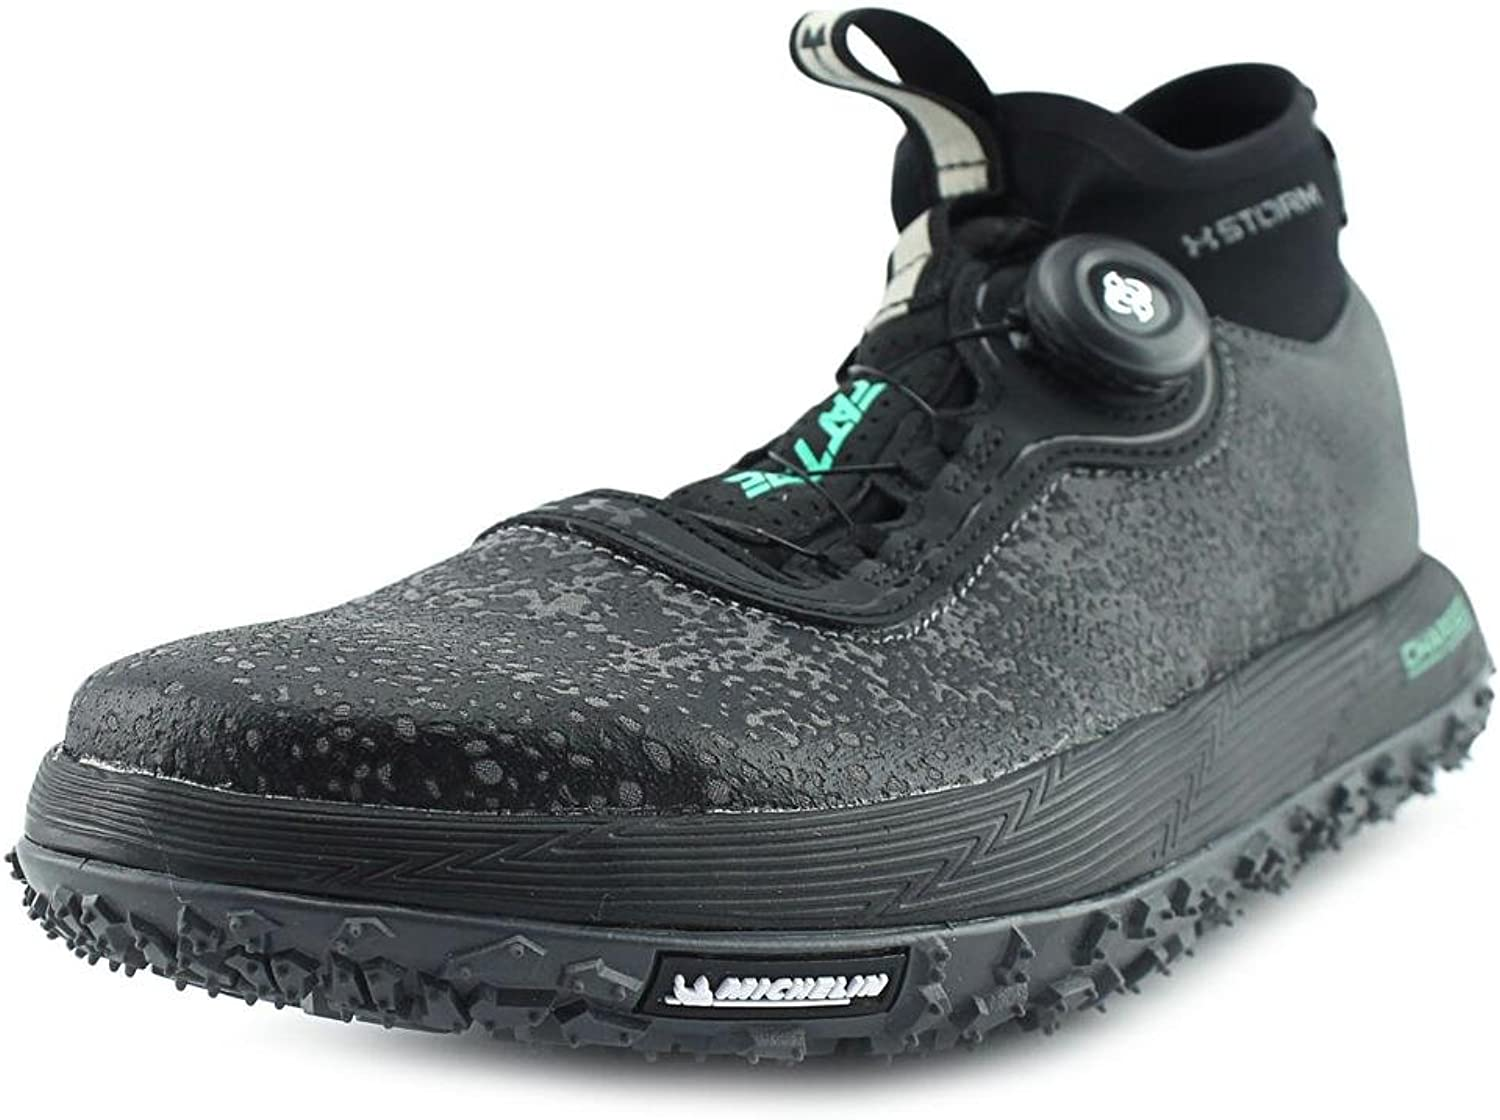 separation shoes 04680 9d44a Under Armour Fat Tire 2 Trail Running shoes shoes shoes SS17 ...